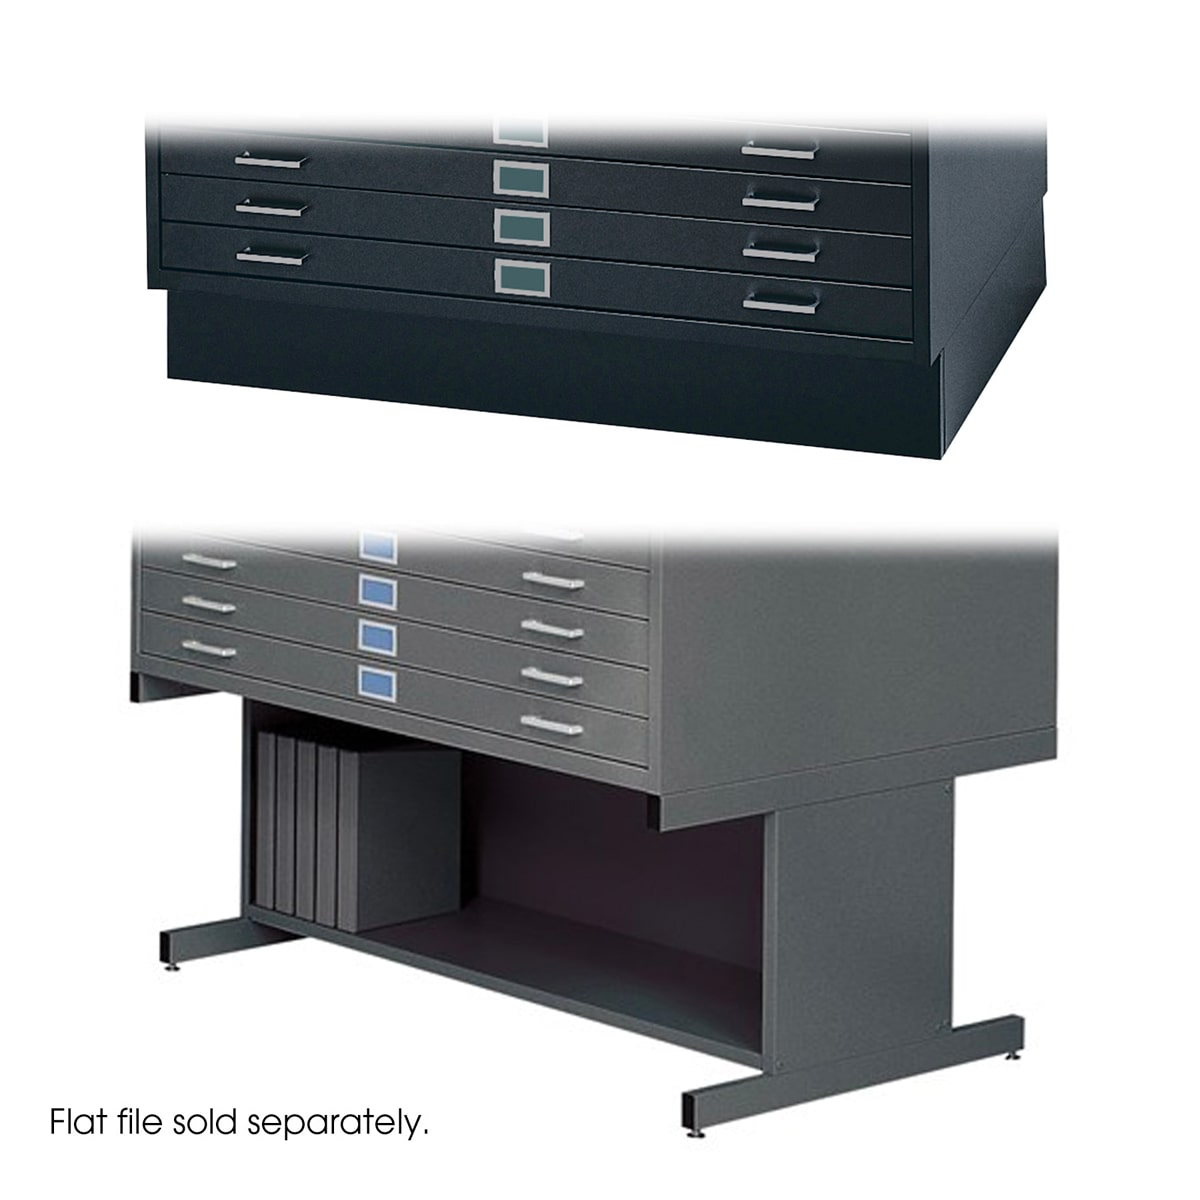 Shelving & Flat Files